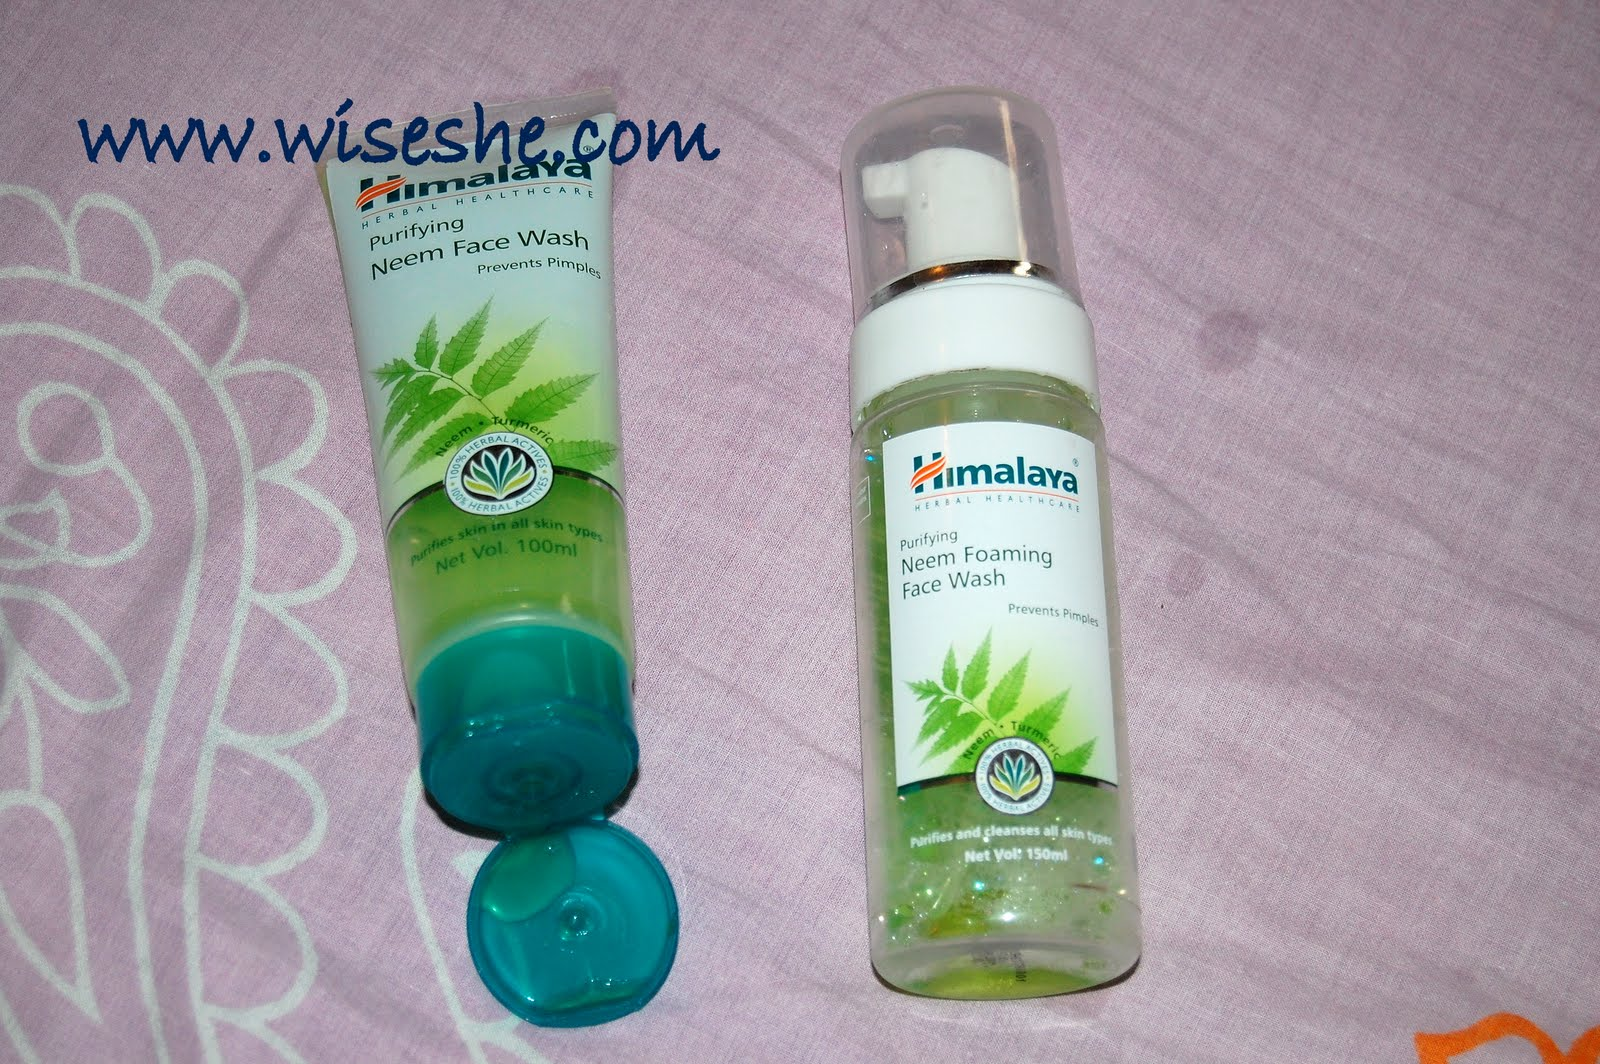 Himalaya Purifying Neem Face Wash And Pirfying Foaming Clean Clear 100ml Review